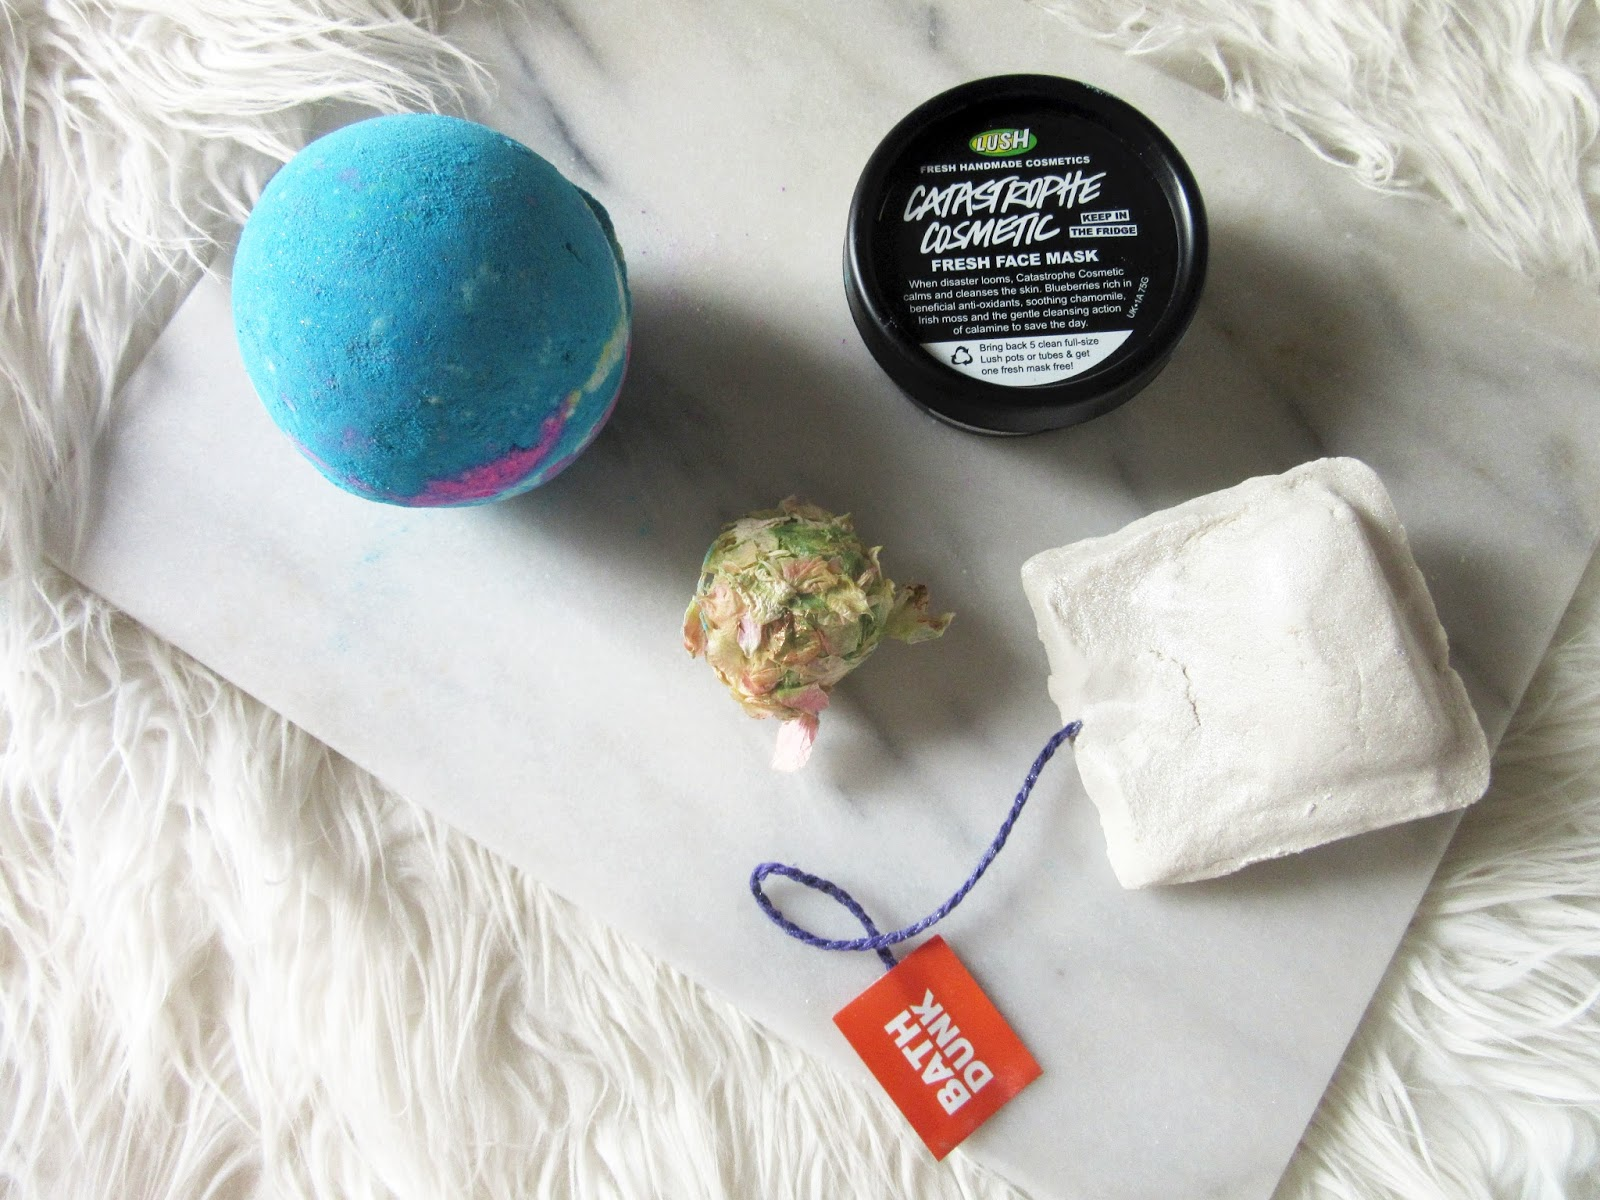 Lush Cosmetics Haul & London Oxford Street Store plus Exclusive Products // Beauty // Lauren Rose //